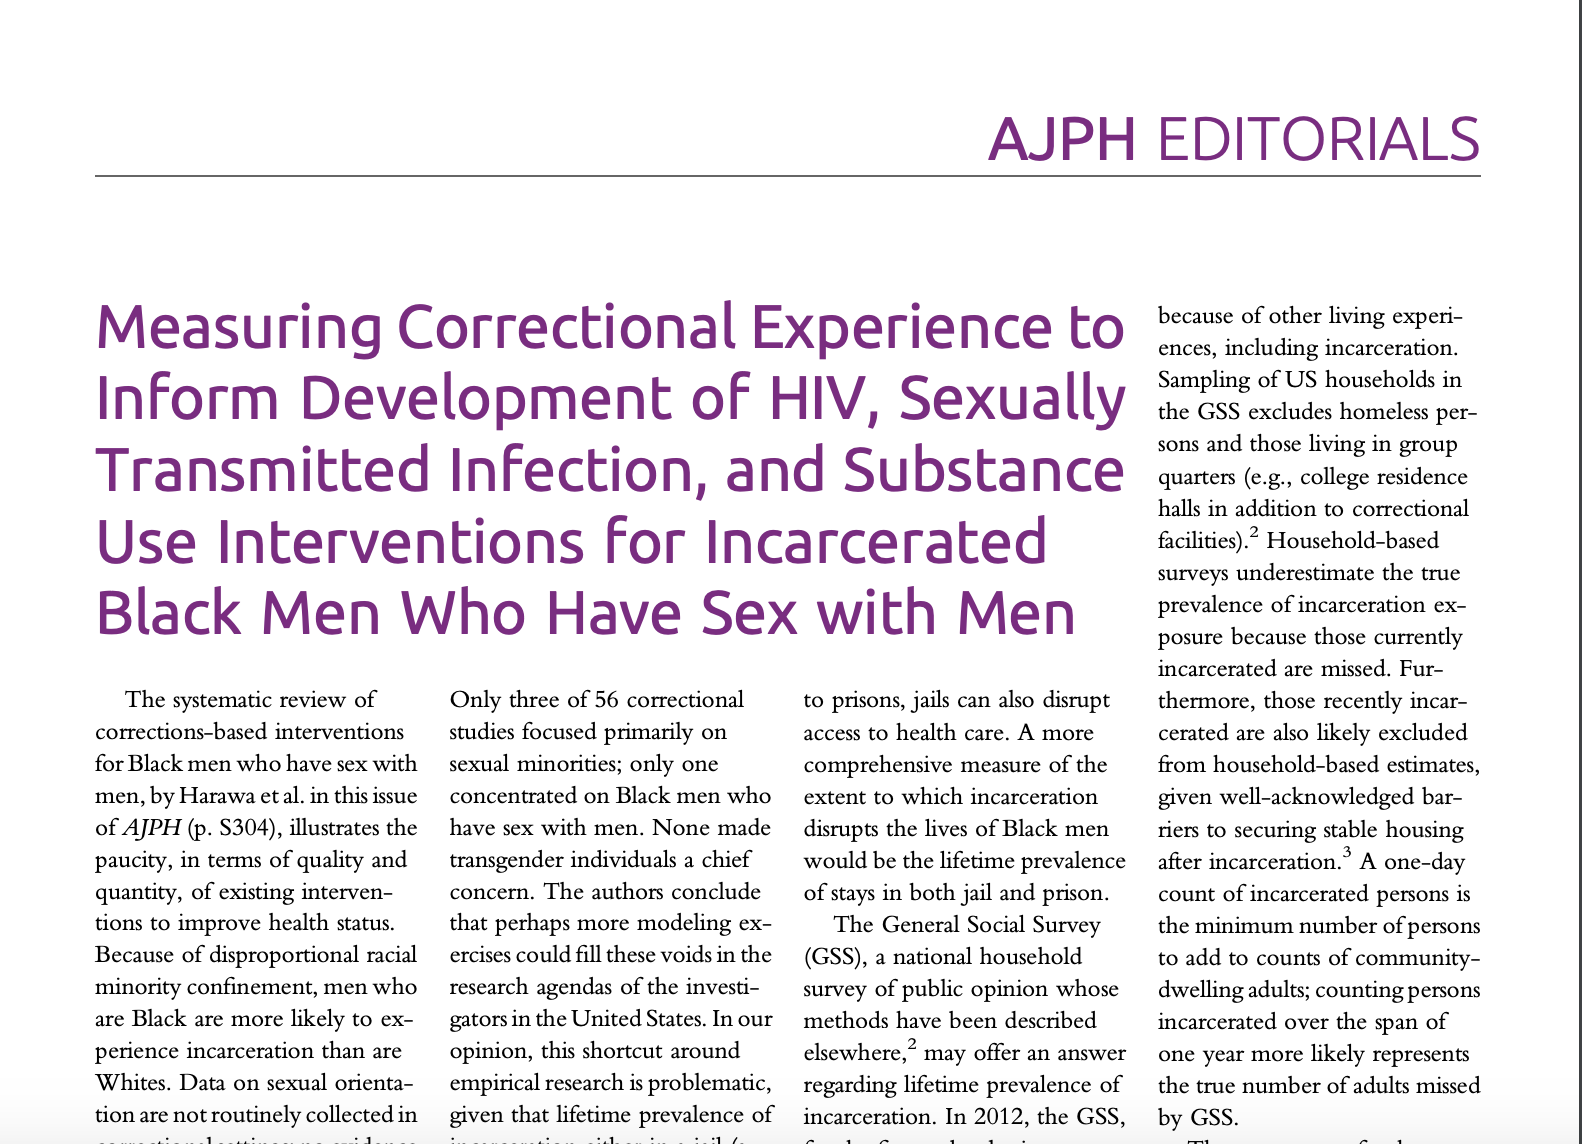 Measuring Correctional Experience to Inform Development of HIV, Sexually Transmitted Infection, and Substance Use Interventions for Incarcerated Black Men Who Have Sex with Men